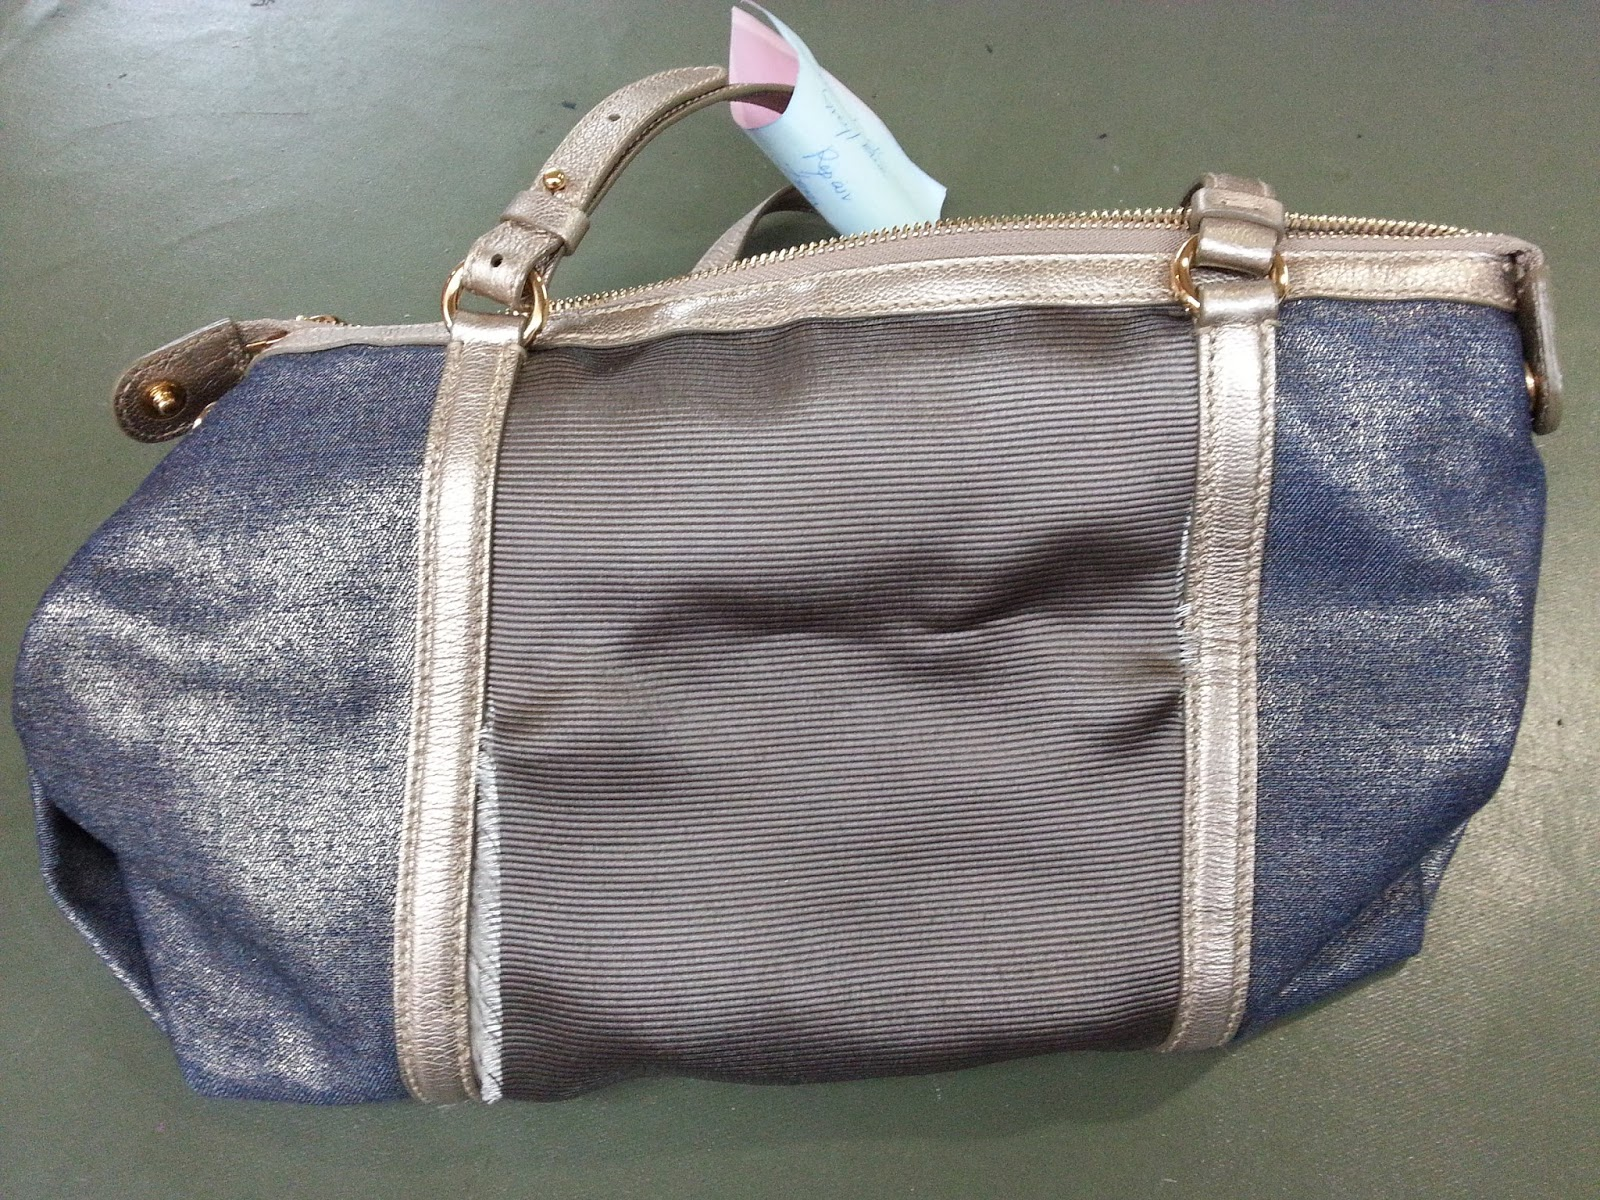 Repair Re Replace Of Broken Handbags And Backpacks Parts Zippers Handles Buckles Straps Linings To Serviceable Condition